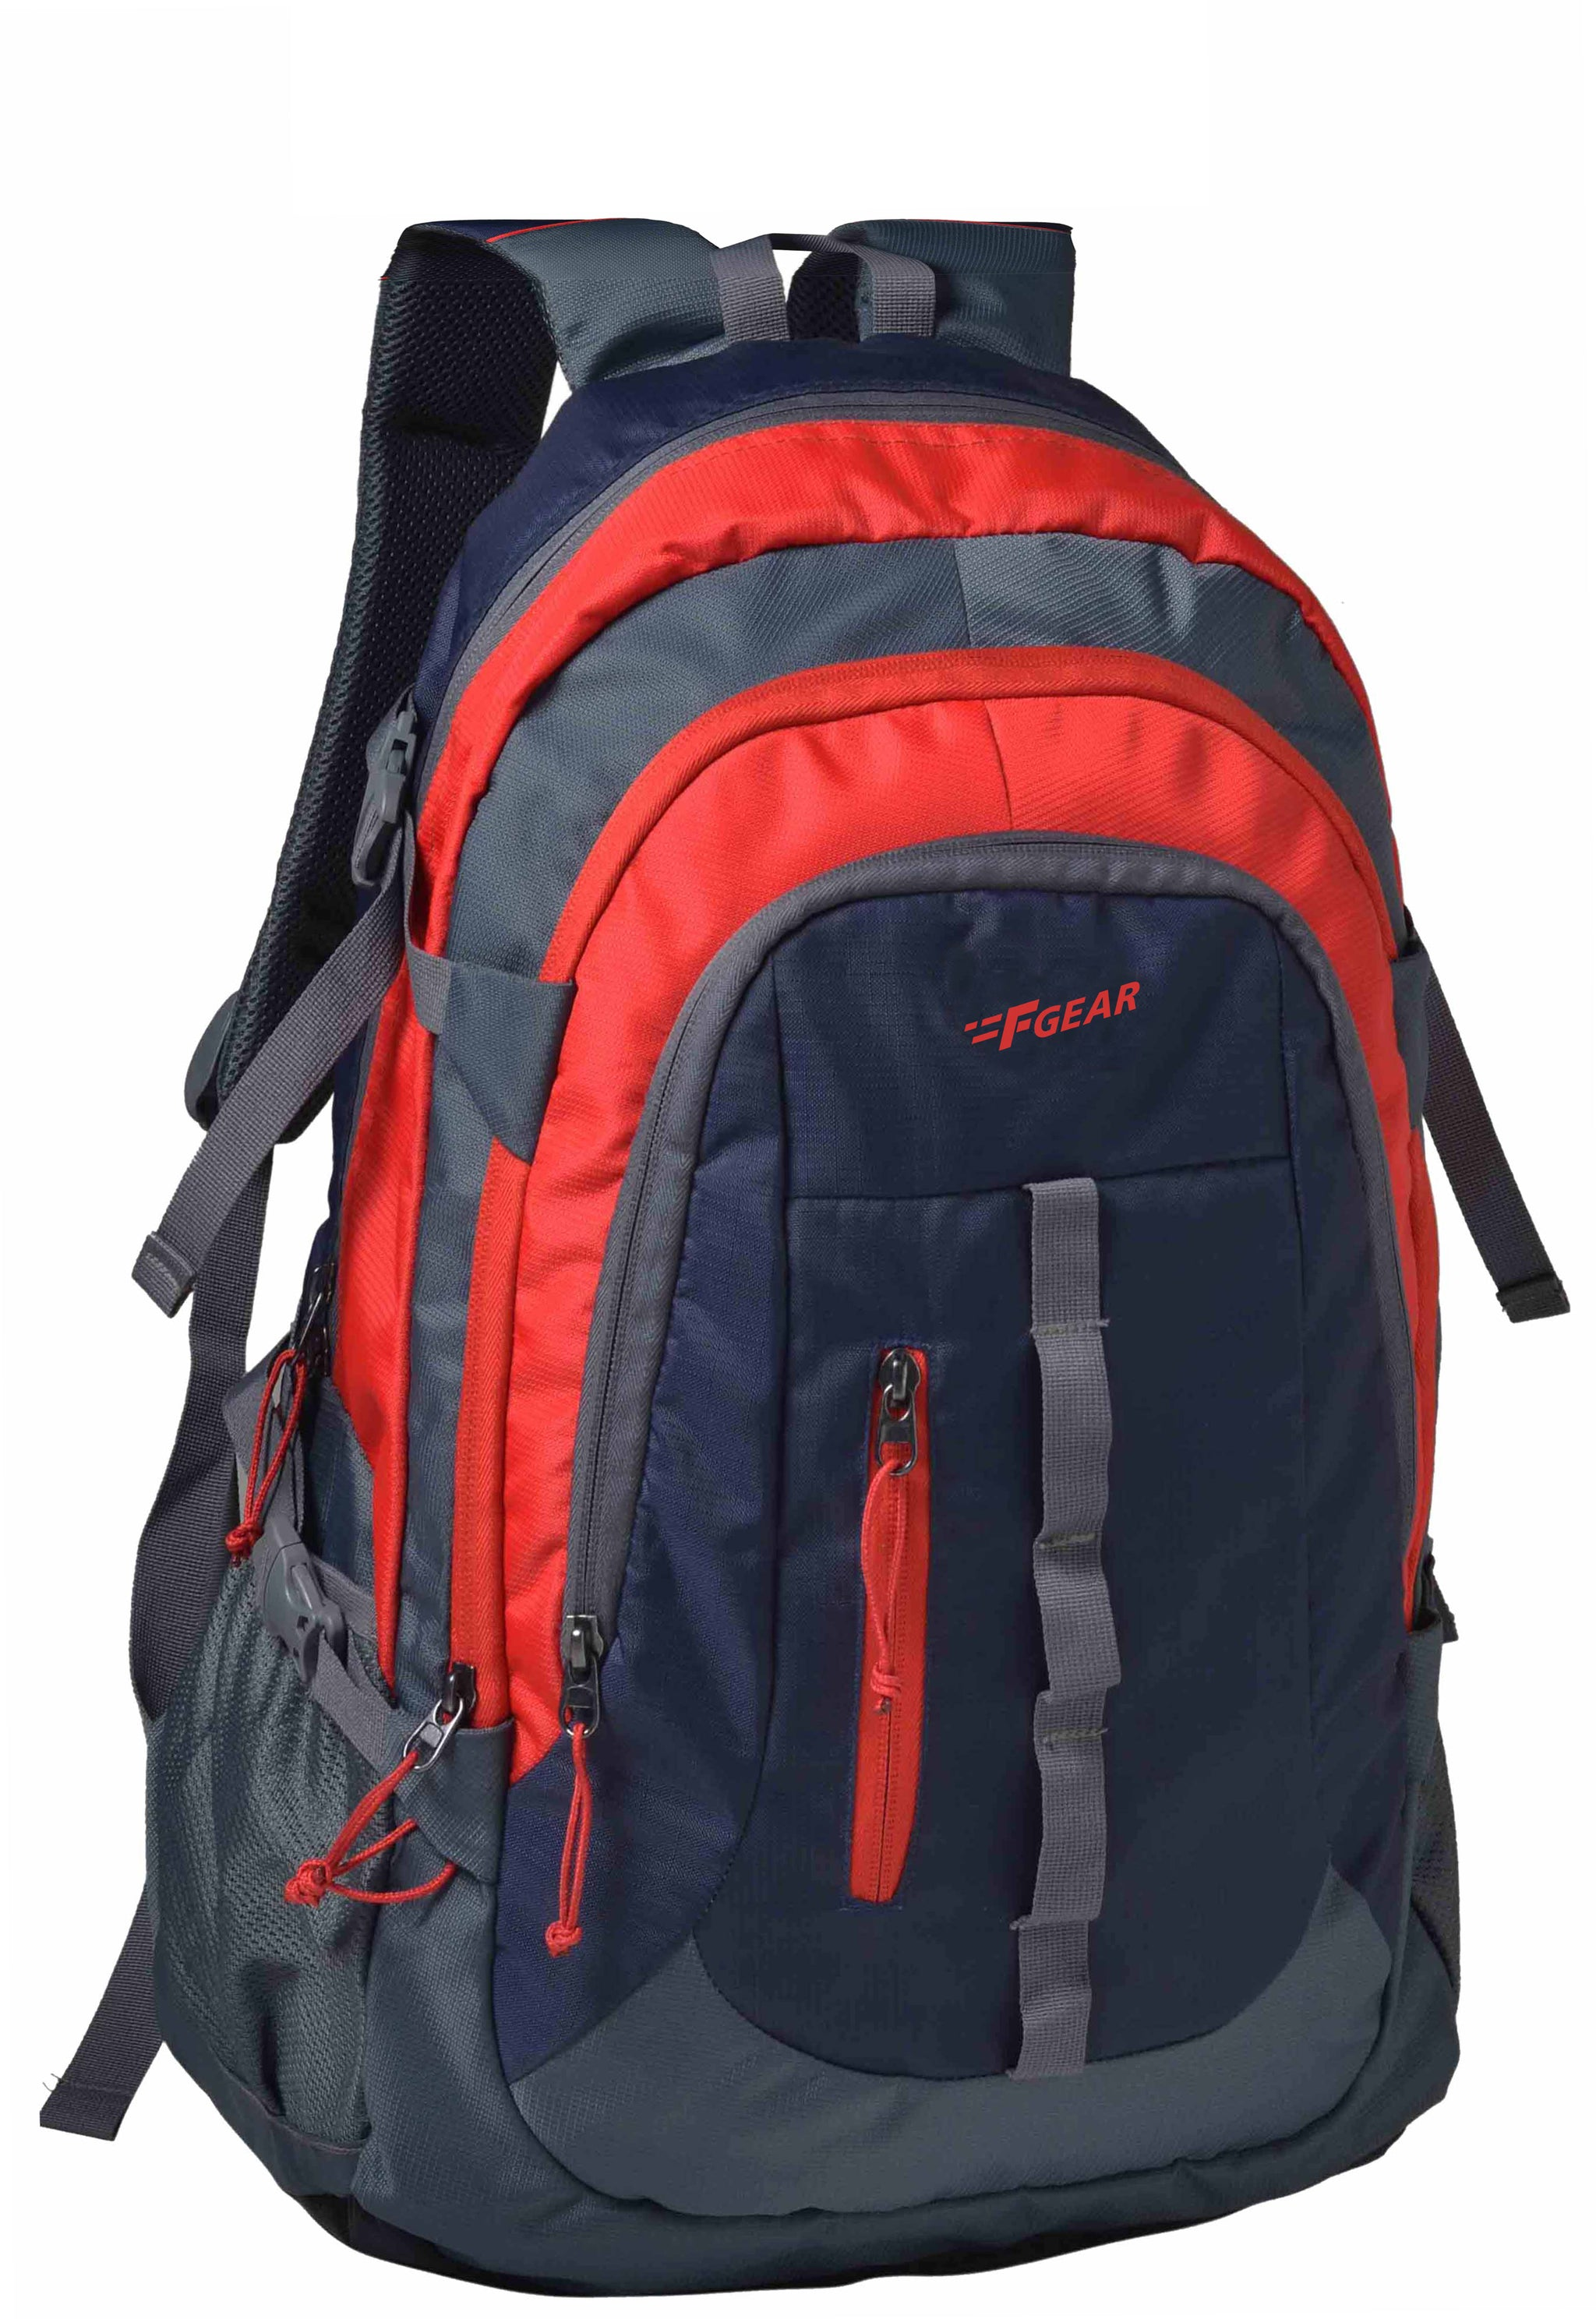 F Gear Defender V2 41 Liters Rucksack (Navy Blue, Red)